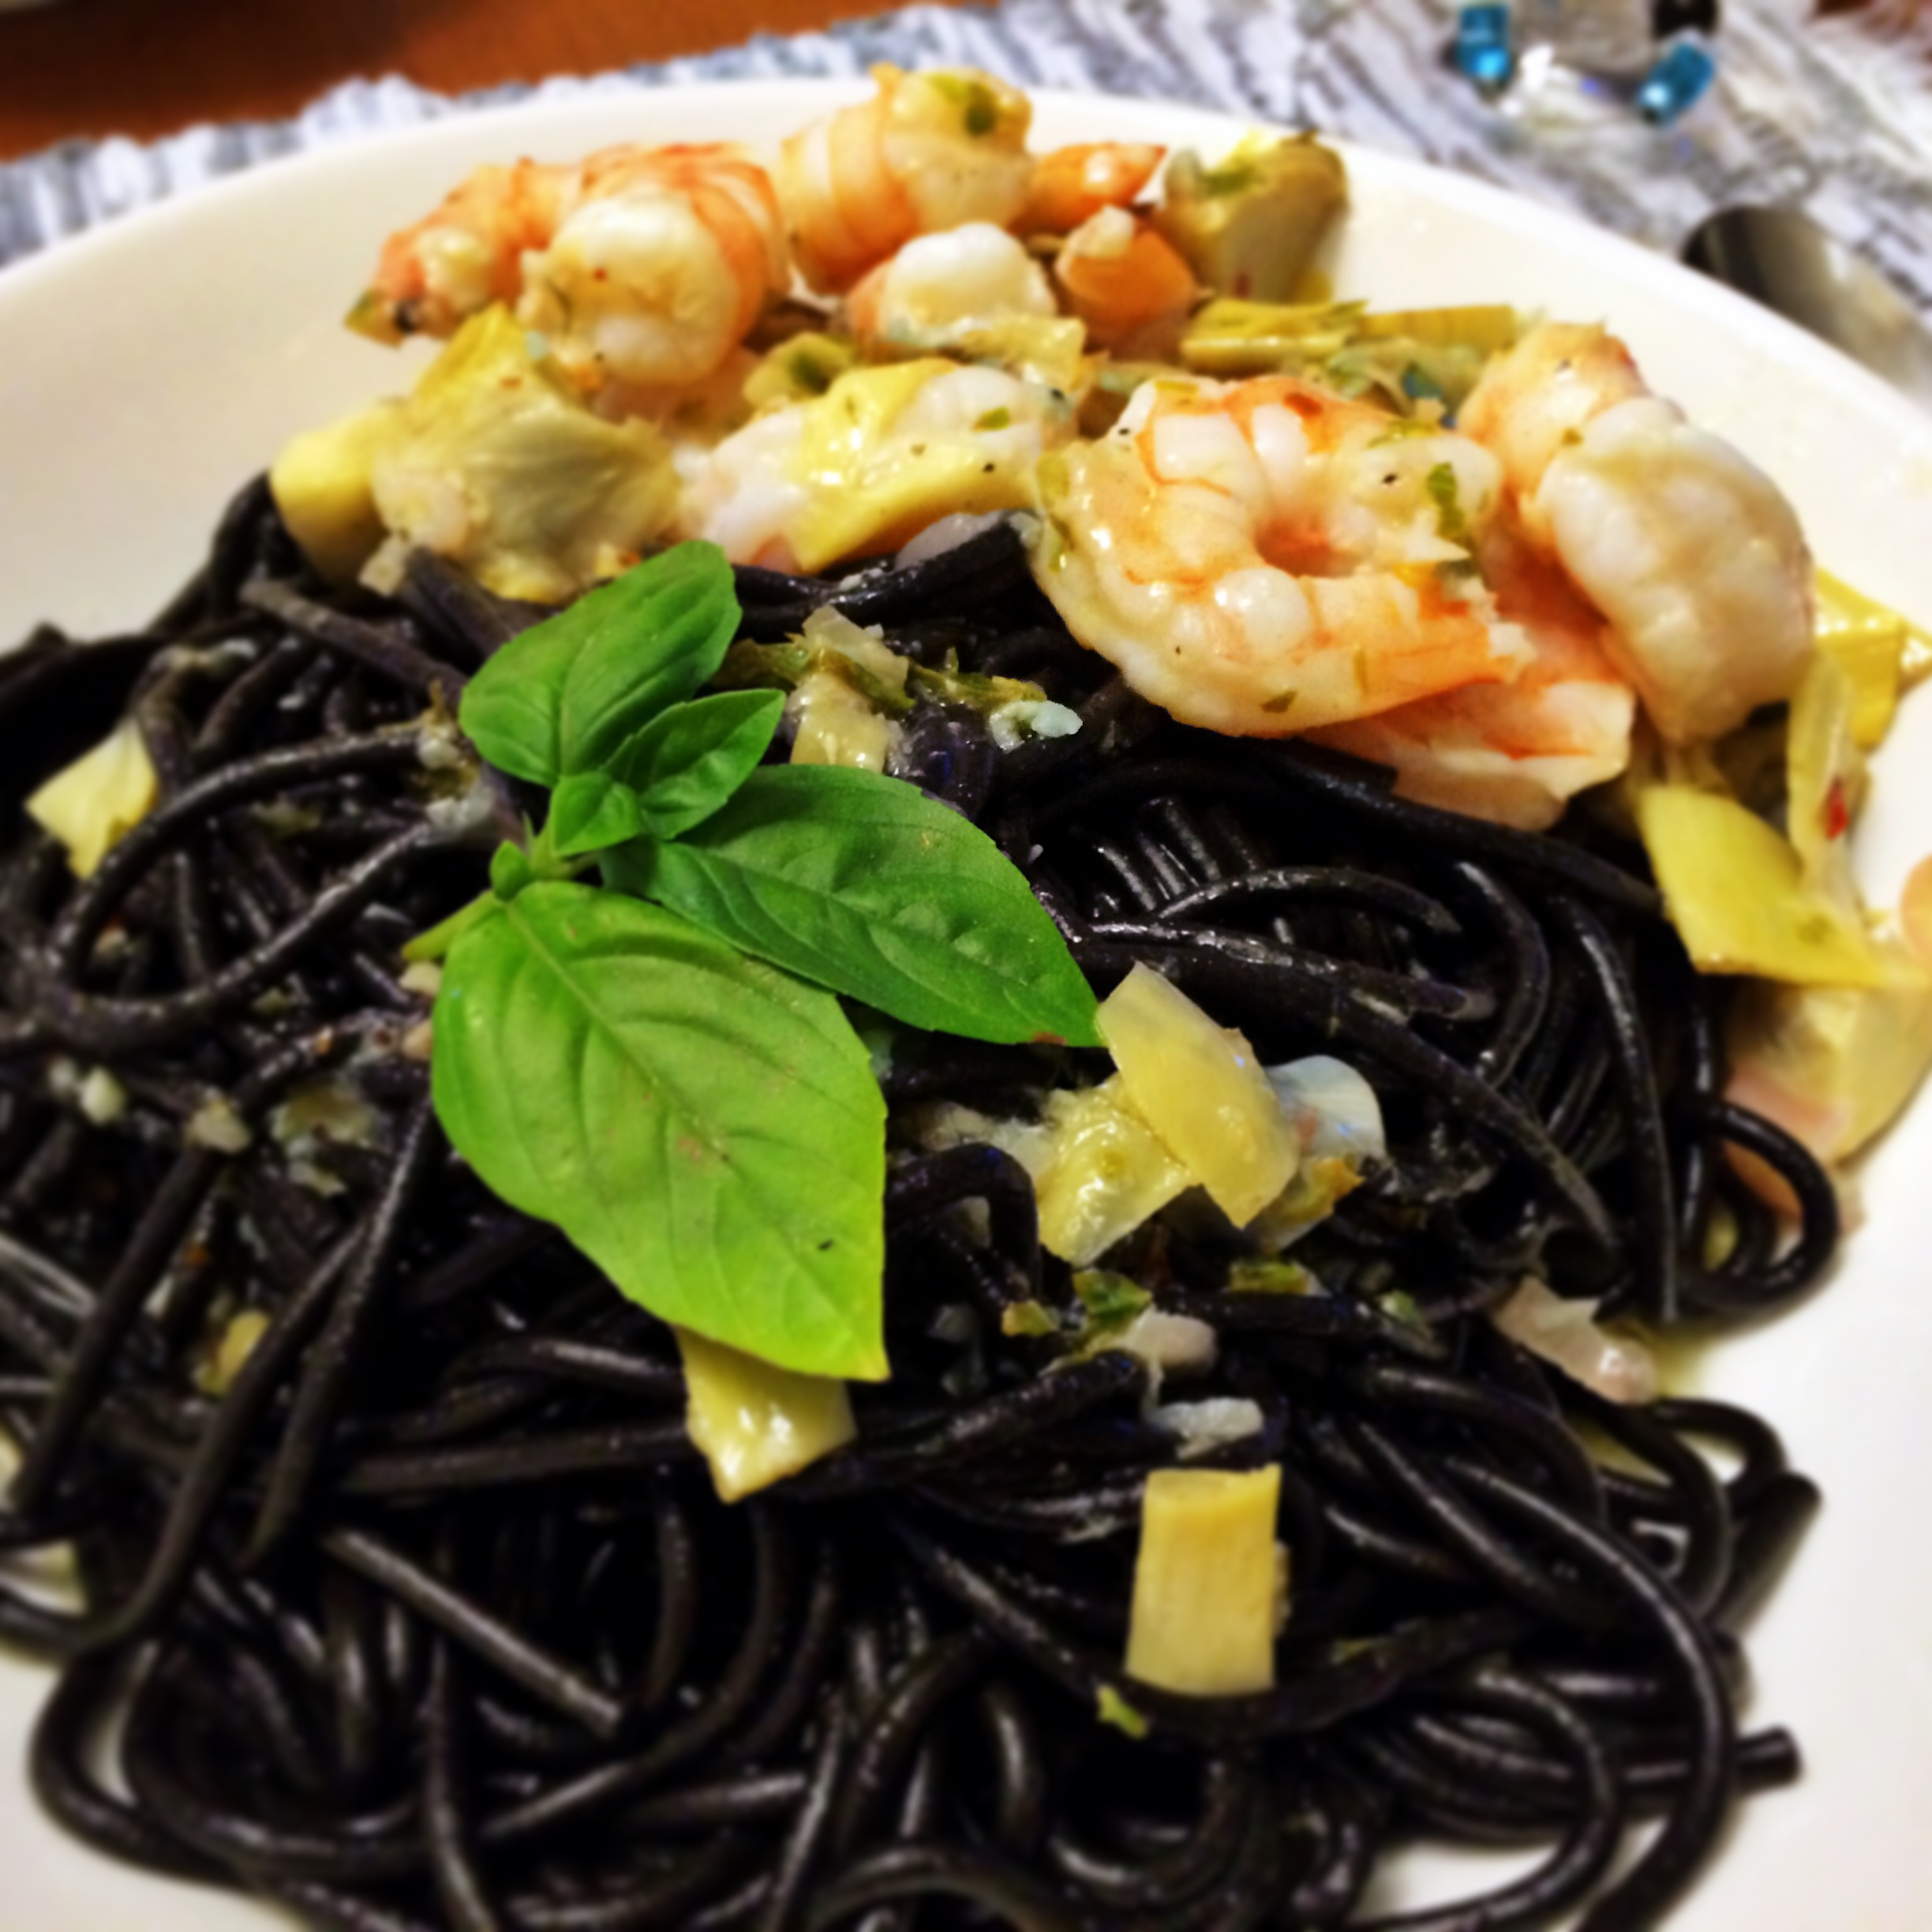 Squid Ink Pasta with Shrimp and Artichokes - The Gourmet Housewife